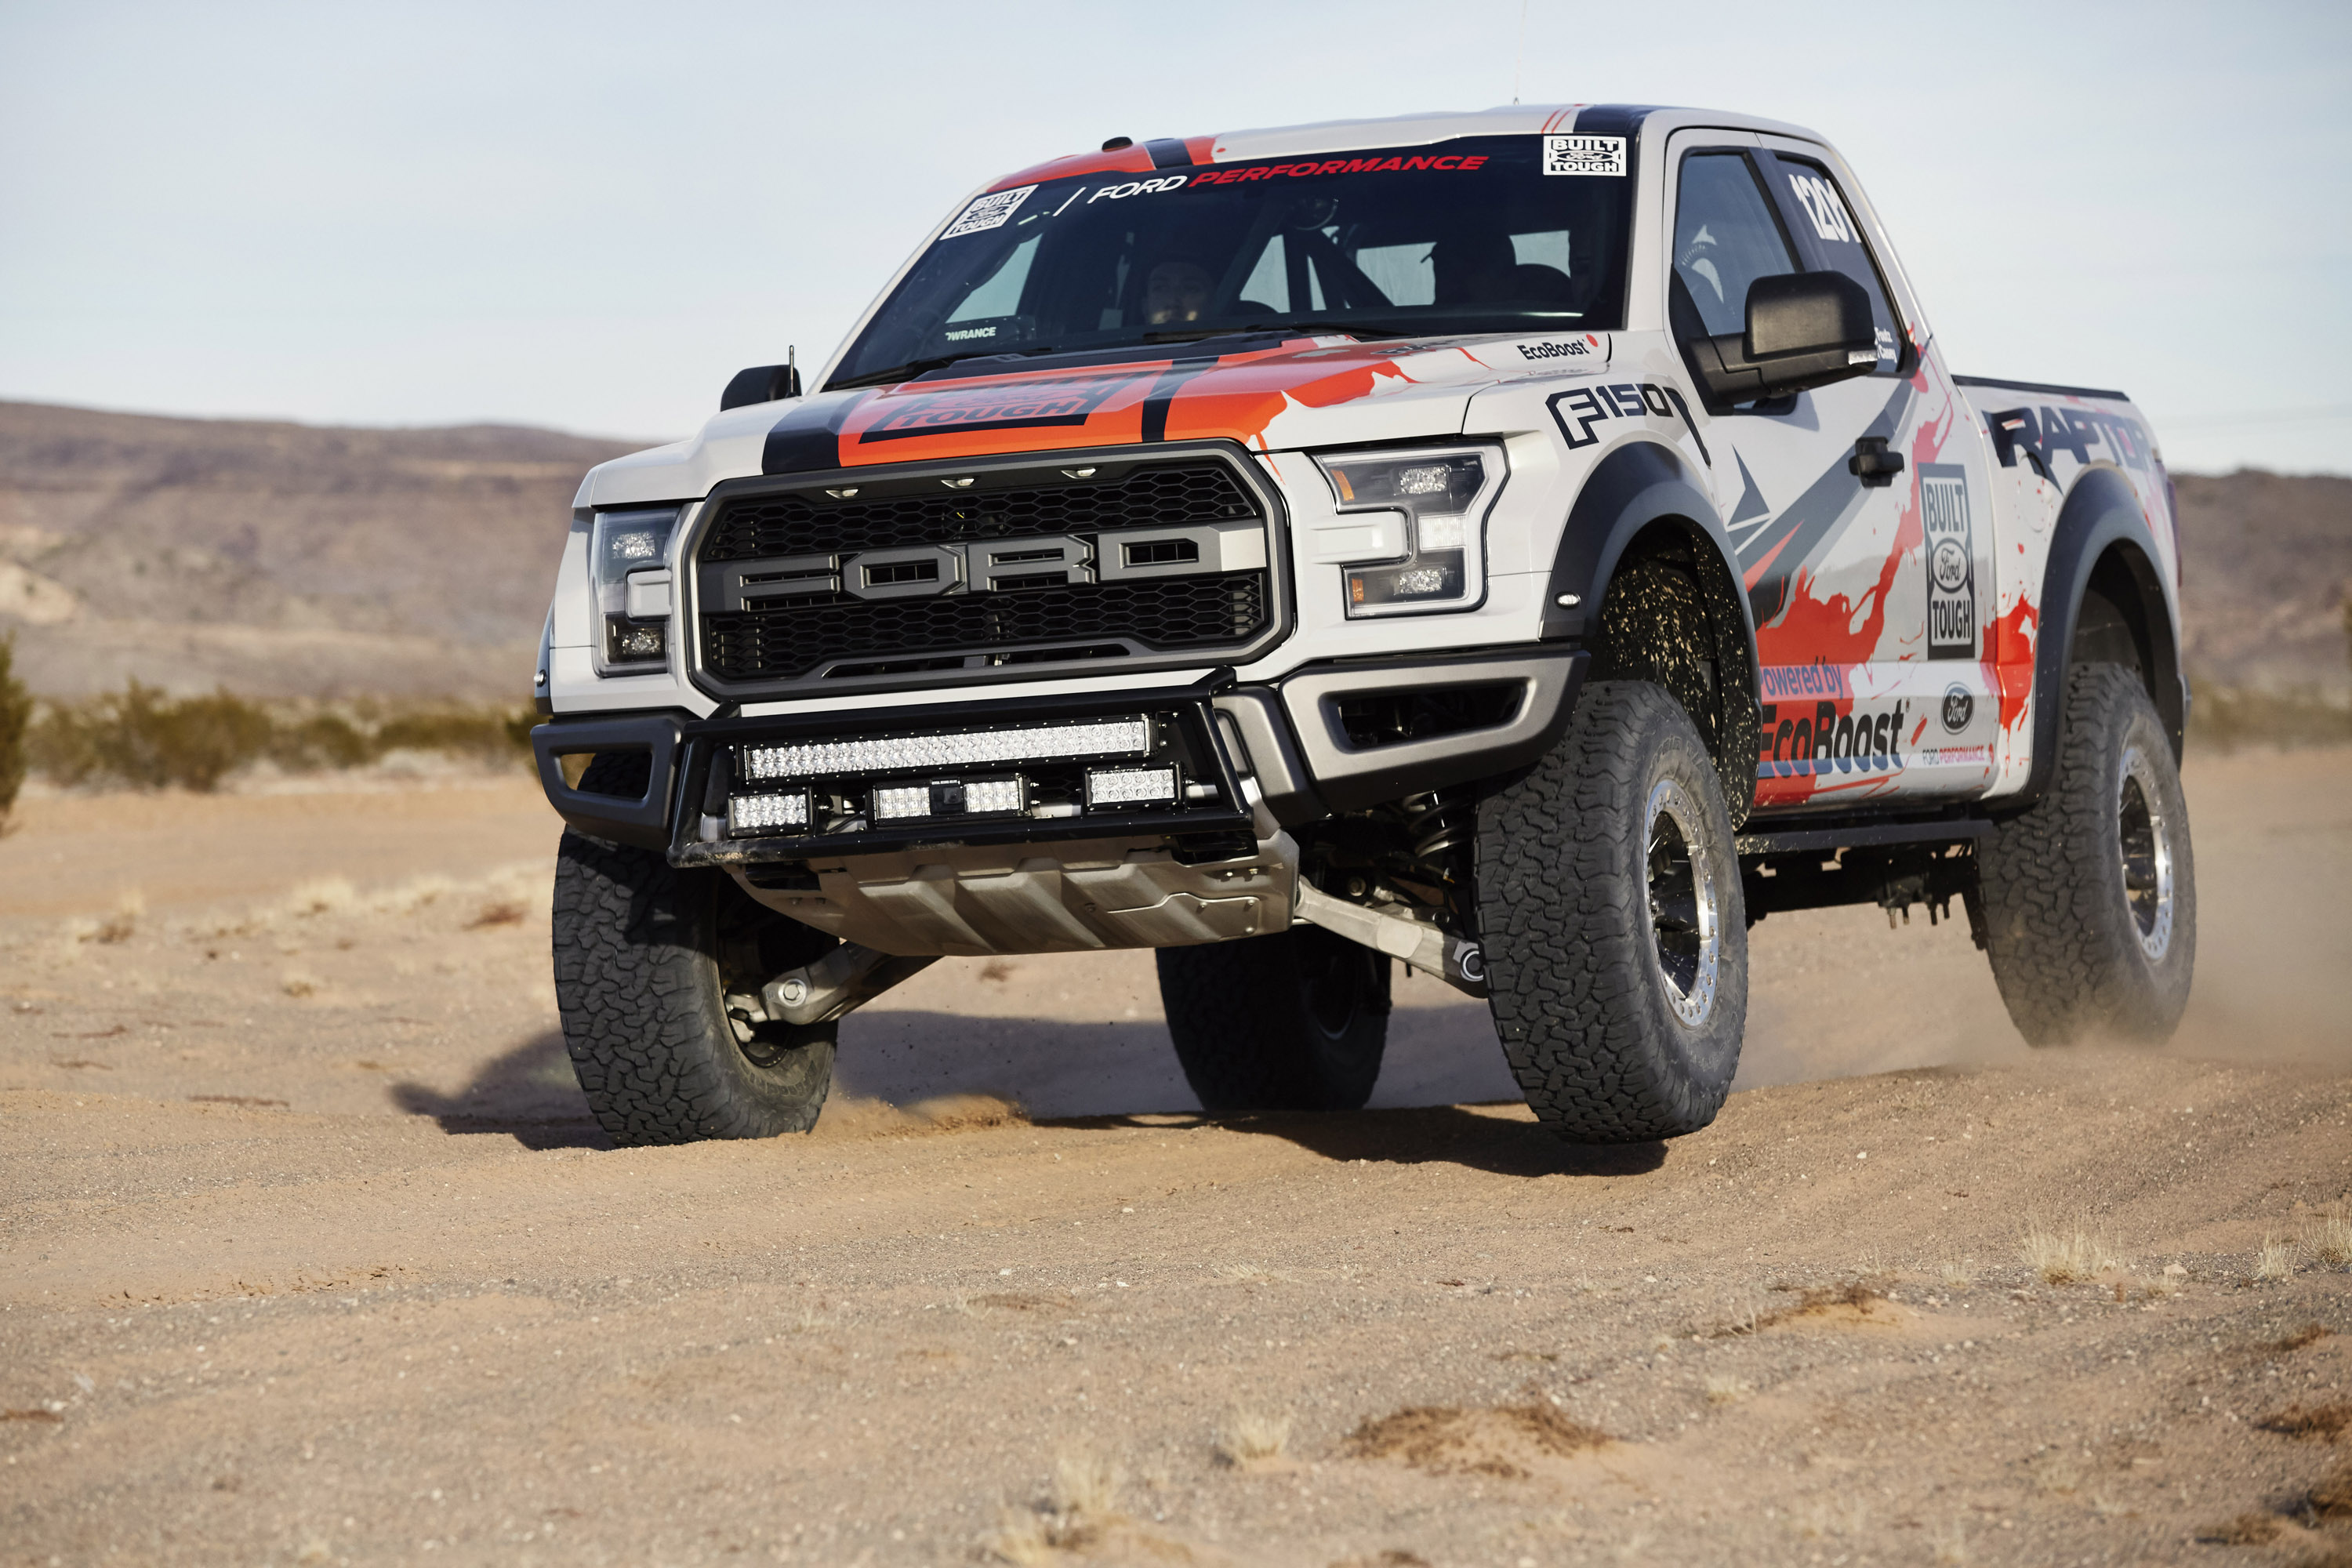 Ford F-150 Raptor is ready for the off-road challenges